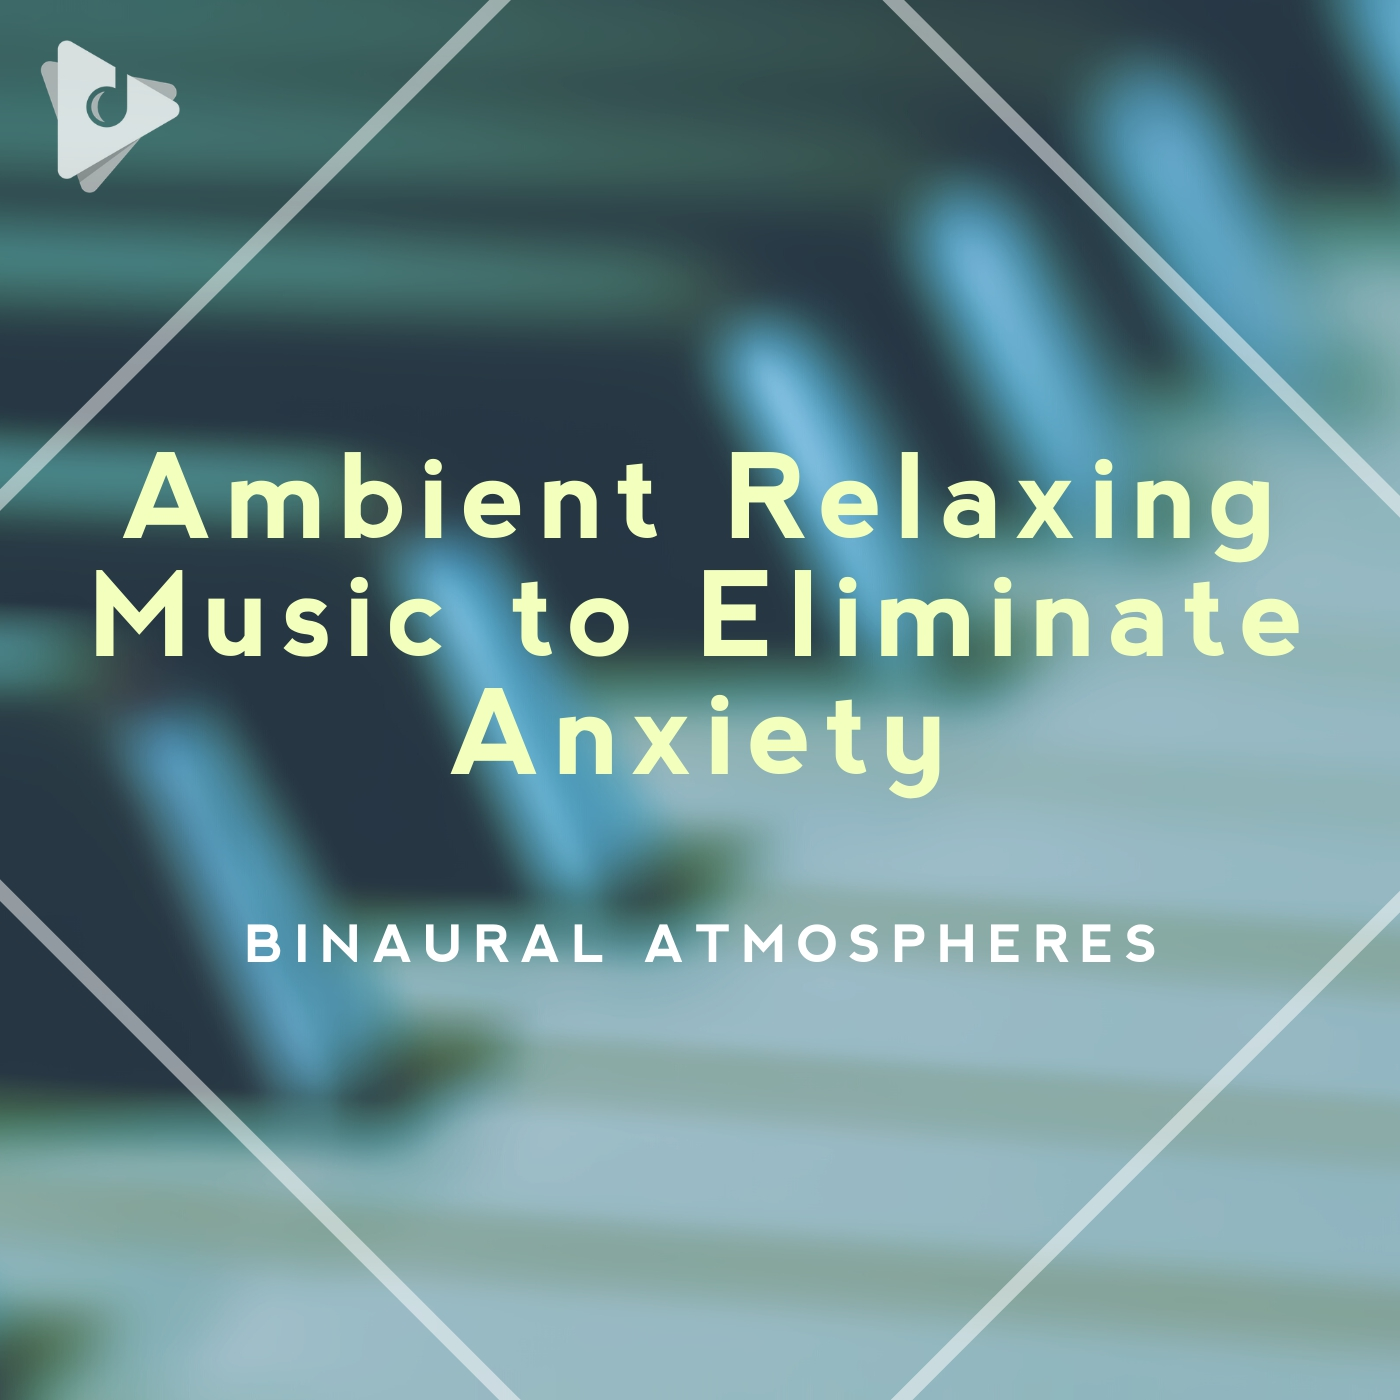 Ambient Relaxing Music to Eliminate Anxiety